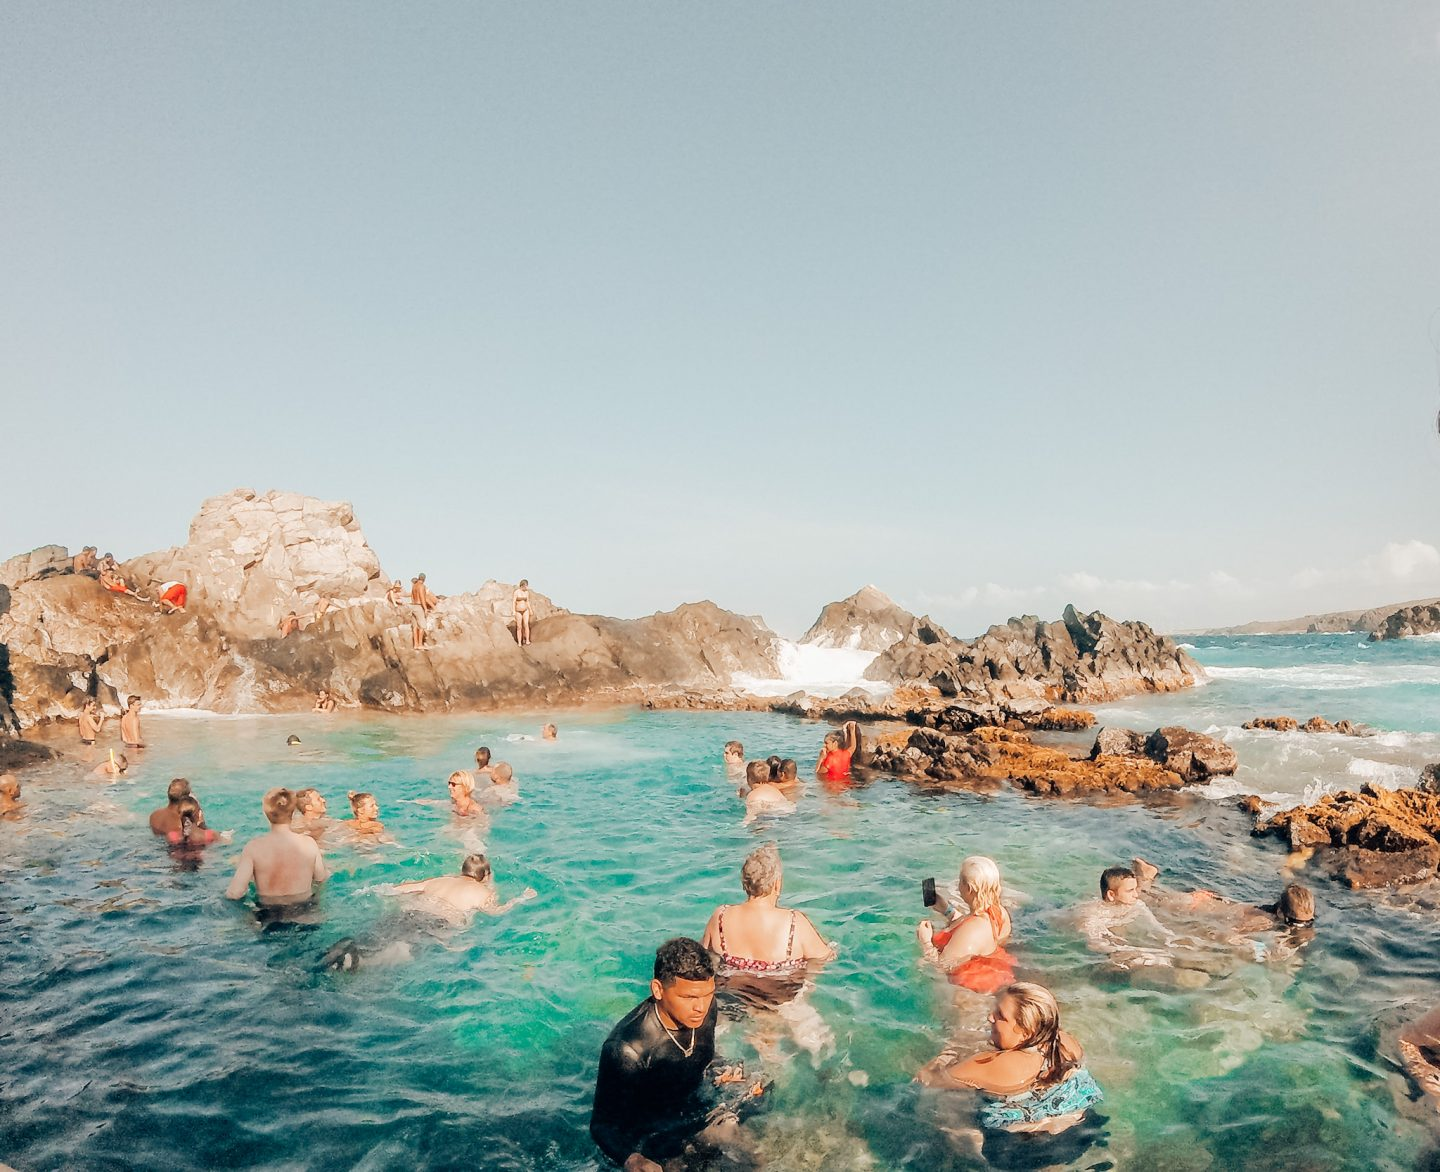 Aruba's Conchi natural pool